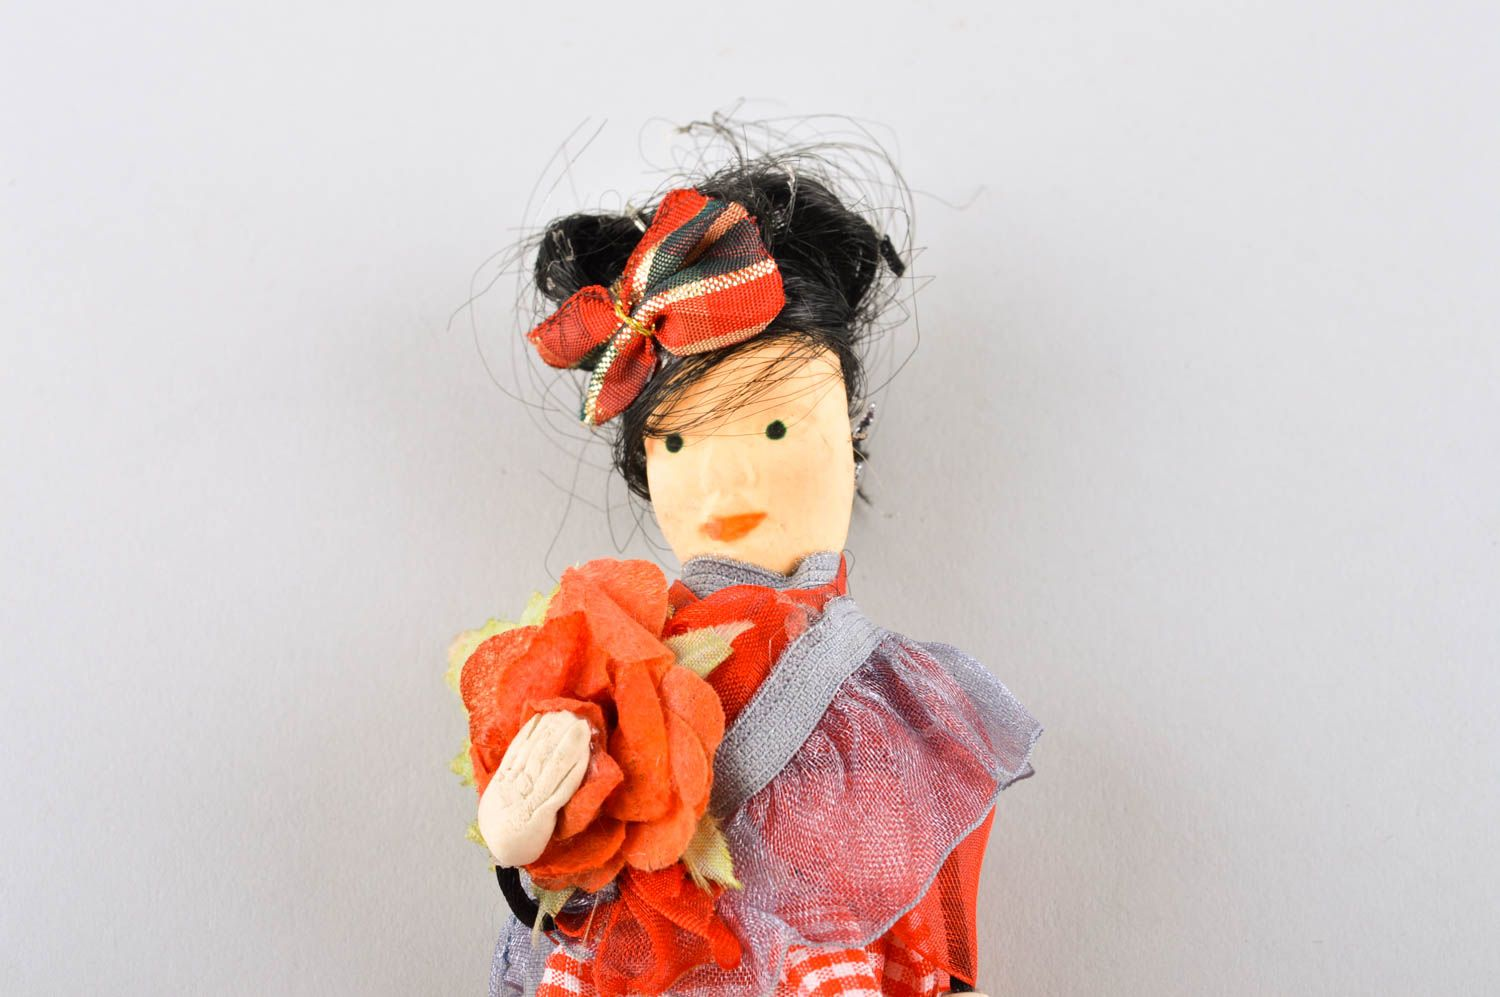 Beautiful handmade fabric toy rag doll collectible dolls decorative use only photo 3